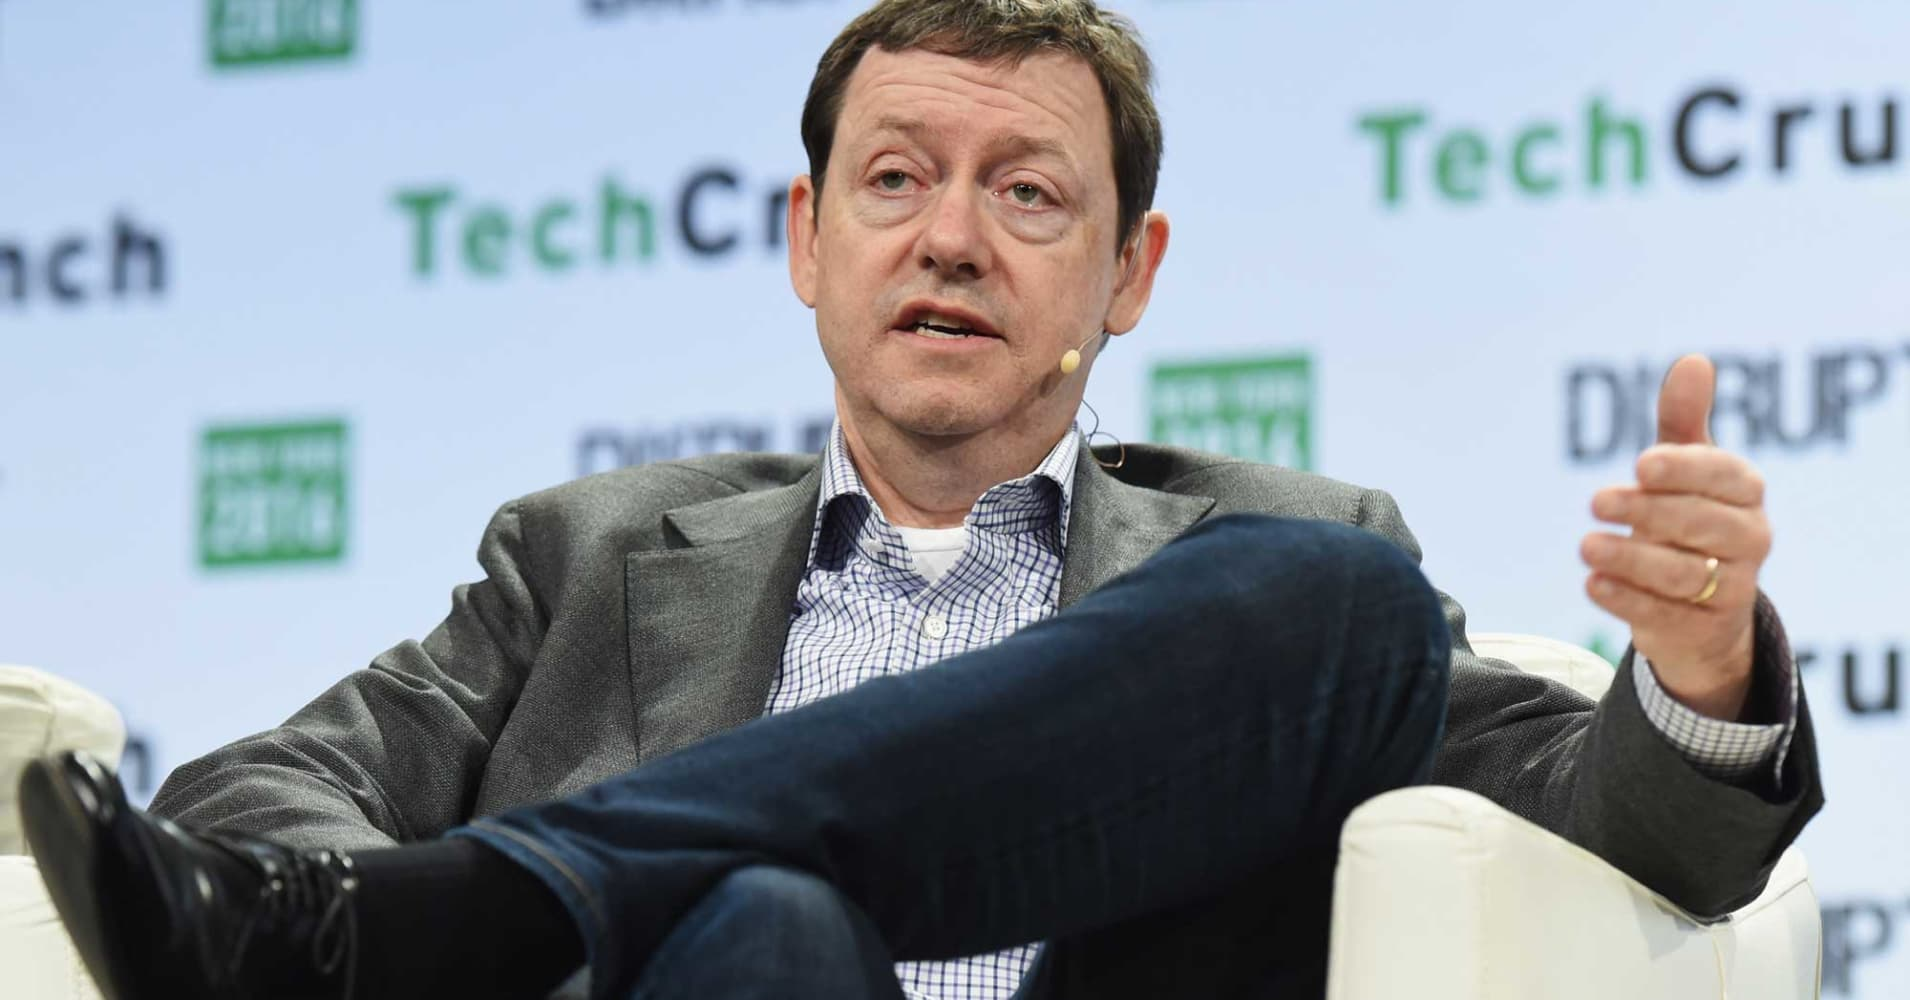 Fred Wilson throws a little cold water on bitcoin enthusiasts - CNBC